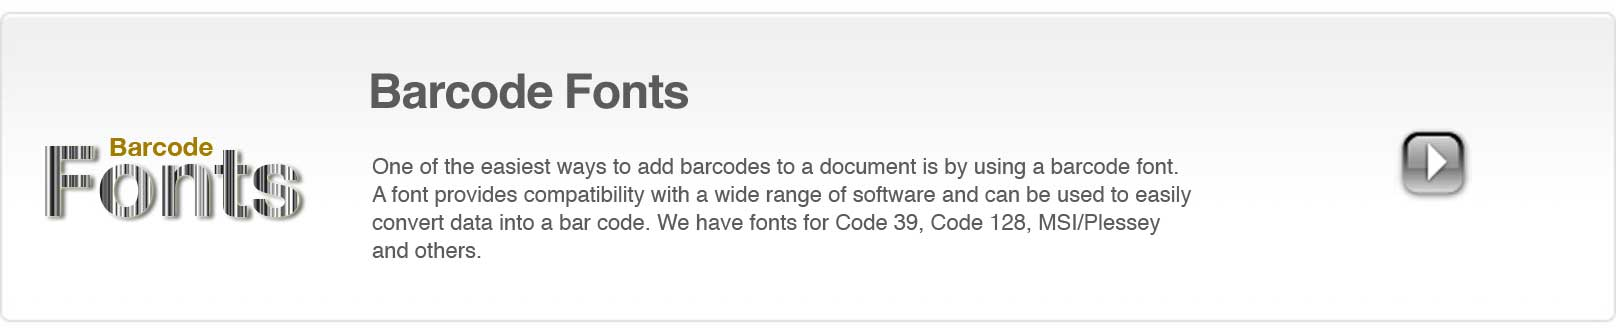 One of the easiest ways to add a barcode to a document is by using a barcode font. A bar code font provides compatibility with a wide range of software and can be used to easily convert data into a barcode. We have fonts for Code 39, Code 128, MSI/Plessey and others.